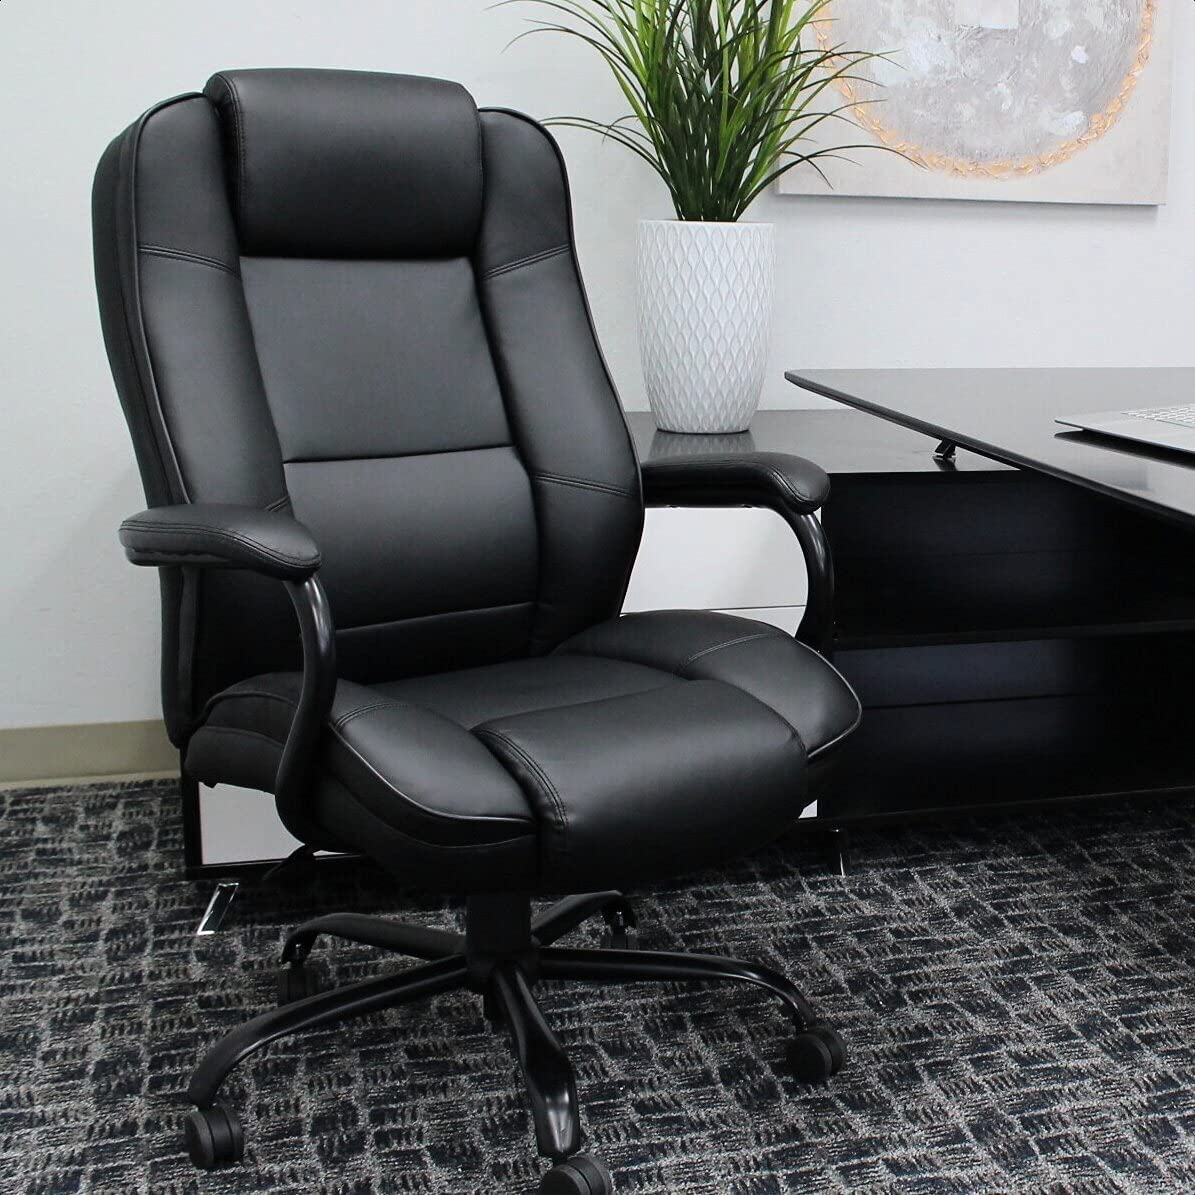 Partee Surprise price Executive Chair Frame Color: Black 23'''' W x Max 83% OFF 21. Seat: